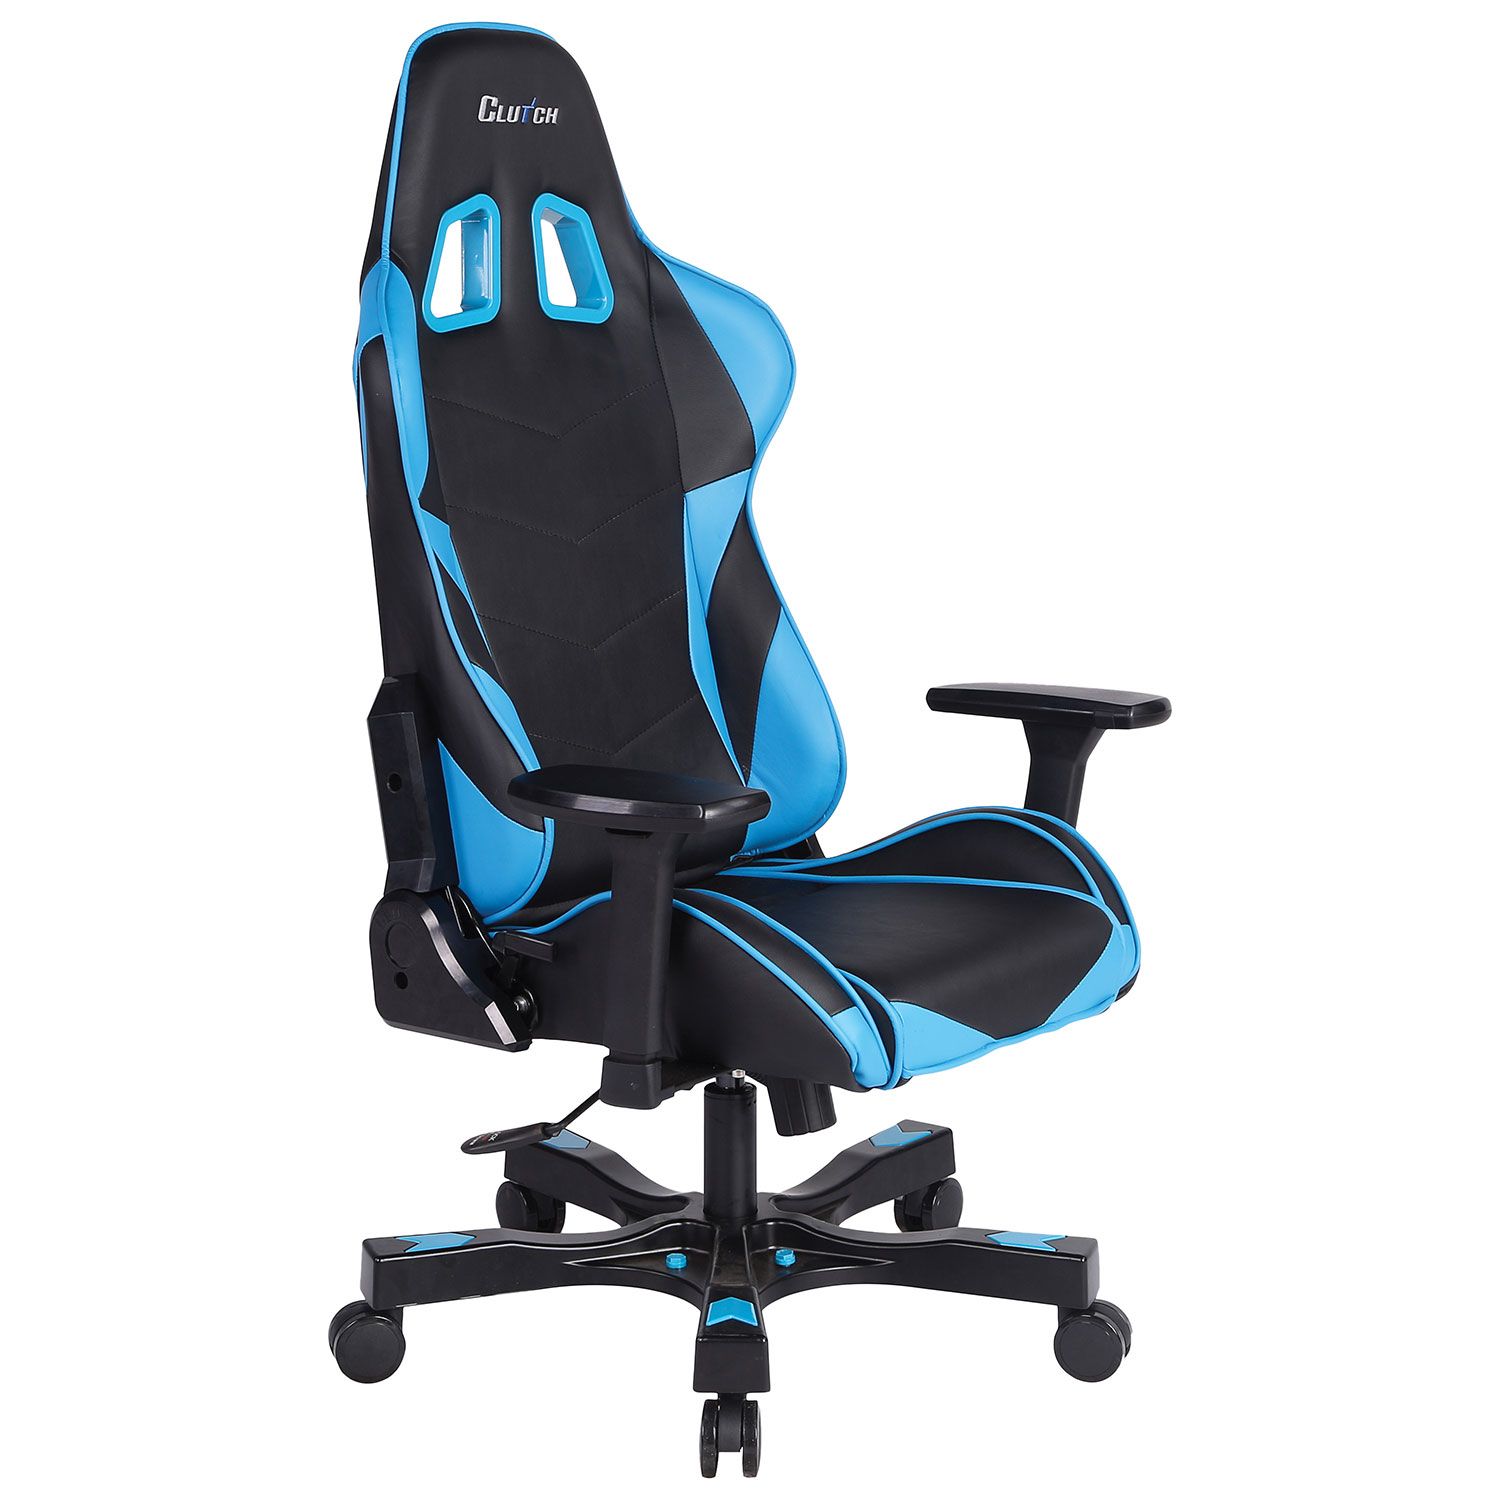 Super comfortable gaming chair - Clutch Chairz Crank Charlie Gaming Chair Blue Black